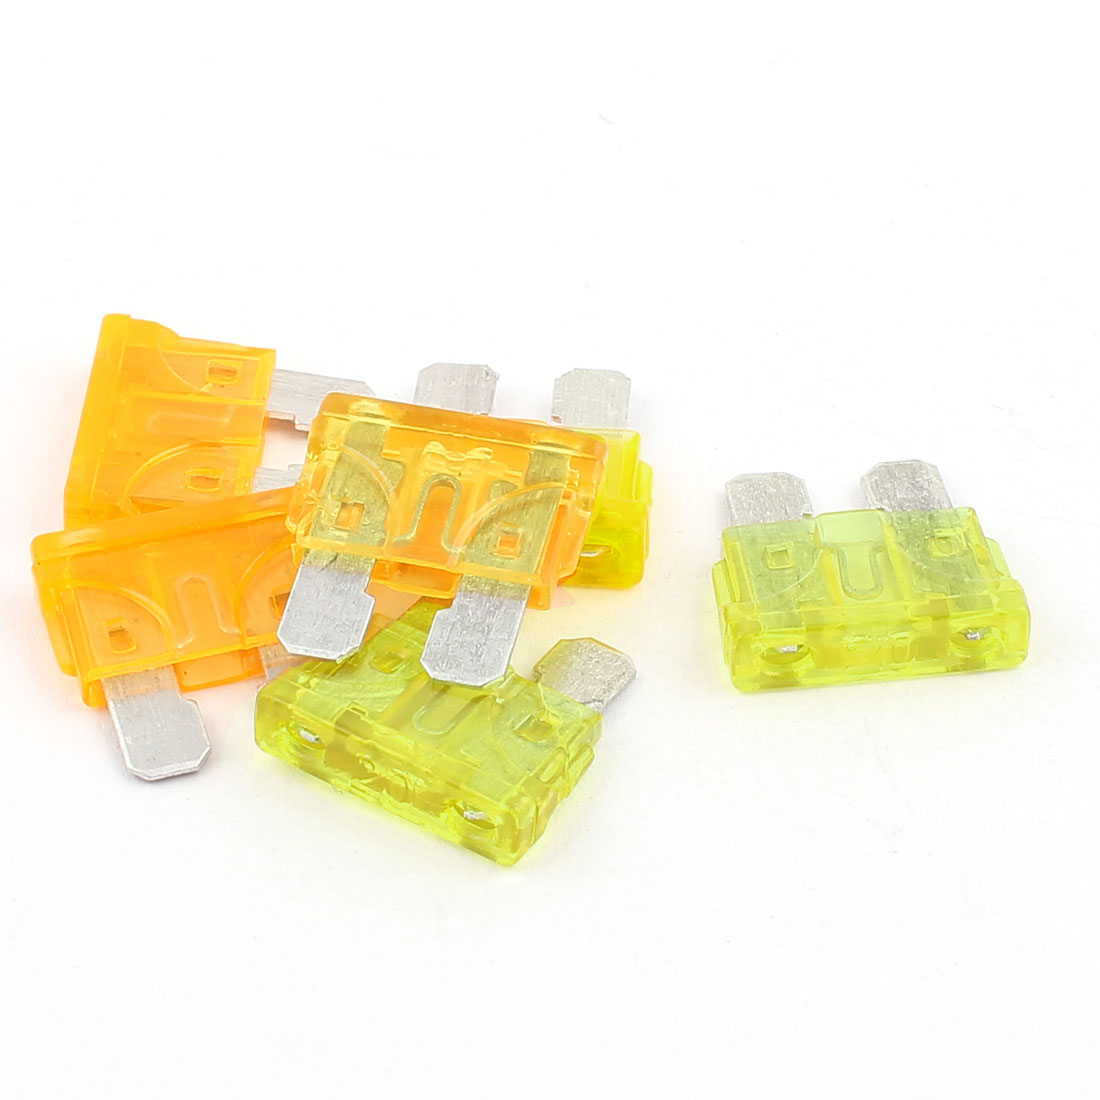 6pcs Yellow Orange 5A 20A Plastic House Mini Blade Fuse for Auto Car Caravan Motorcycle SUV